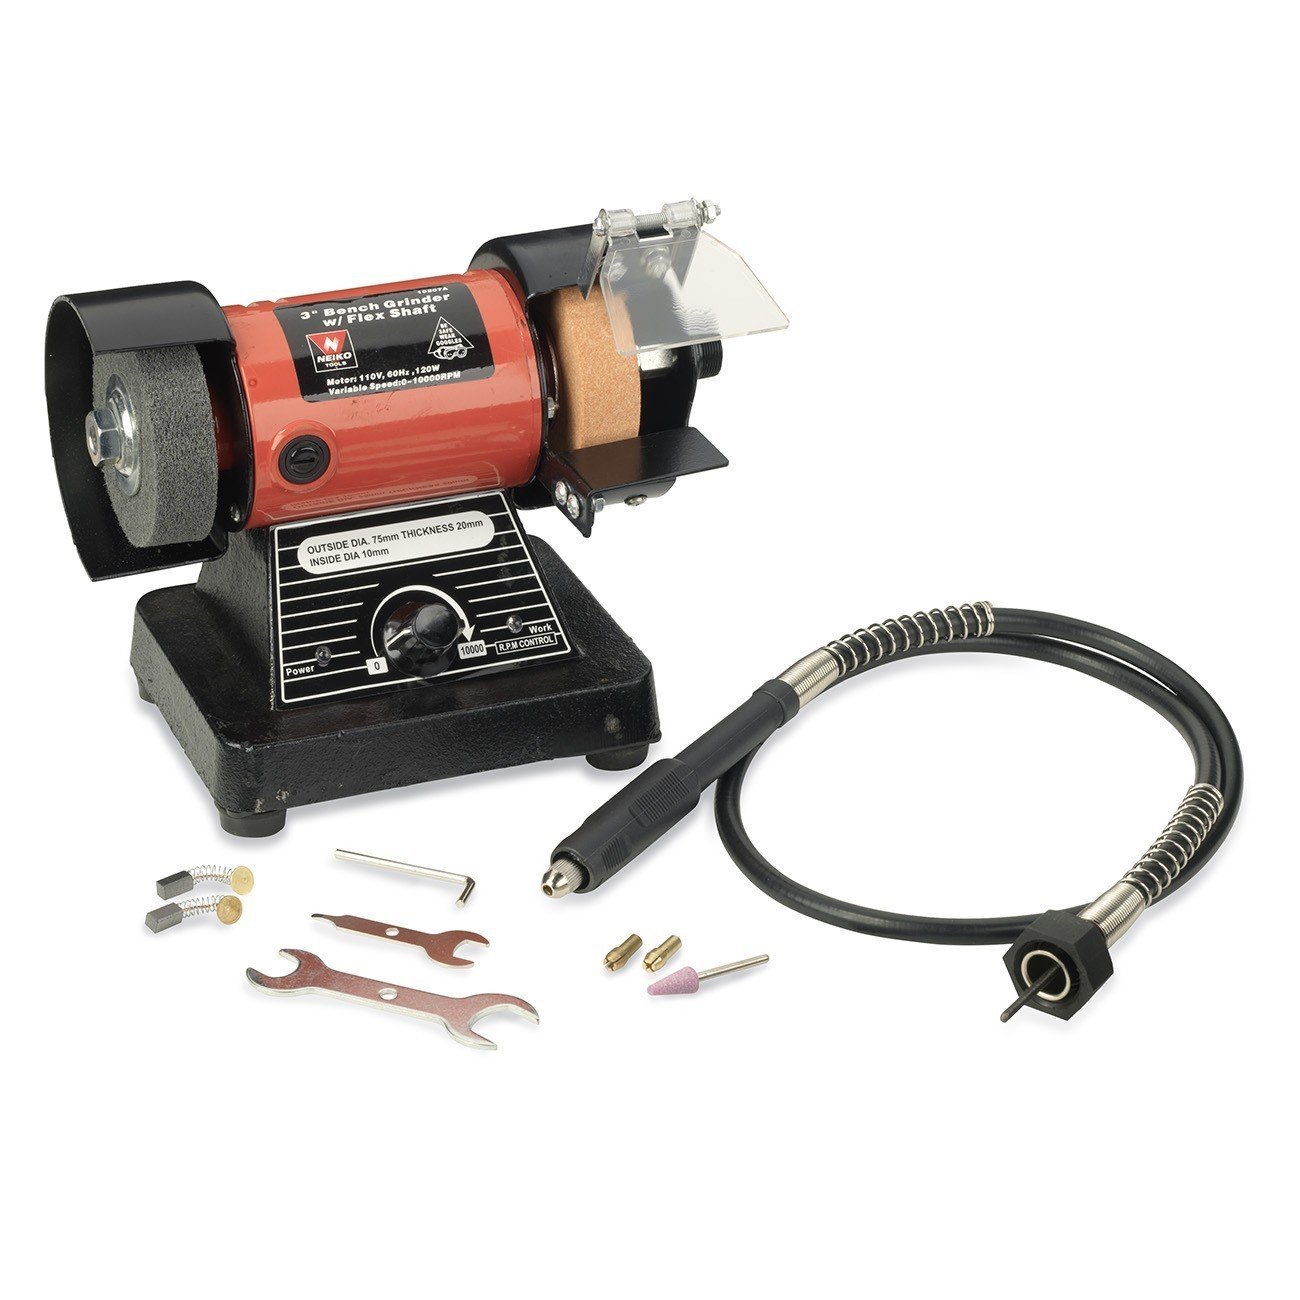 Neiko 10207A 3' Mini Bench Grinder and Polisher with Flexible Shaft and Accessories | 120W | 0-10000 RPM Ridgerock Tools Inc.